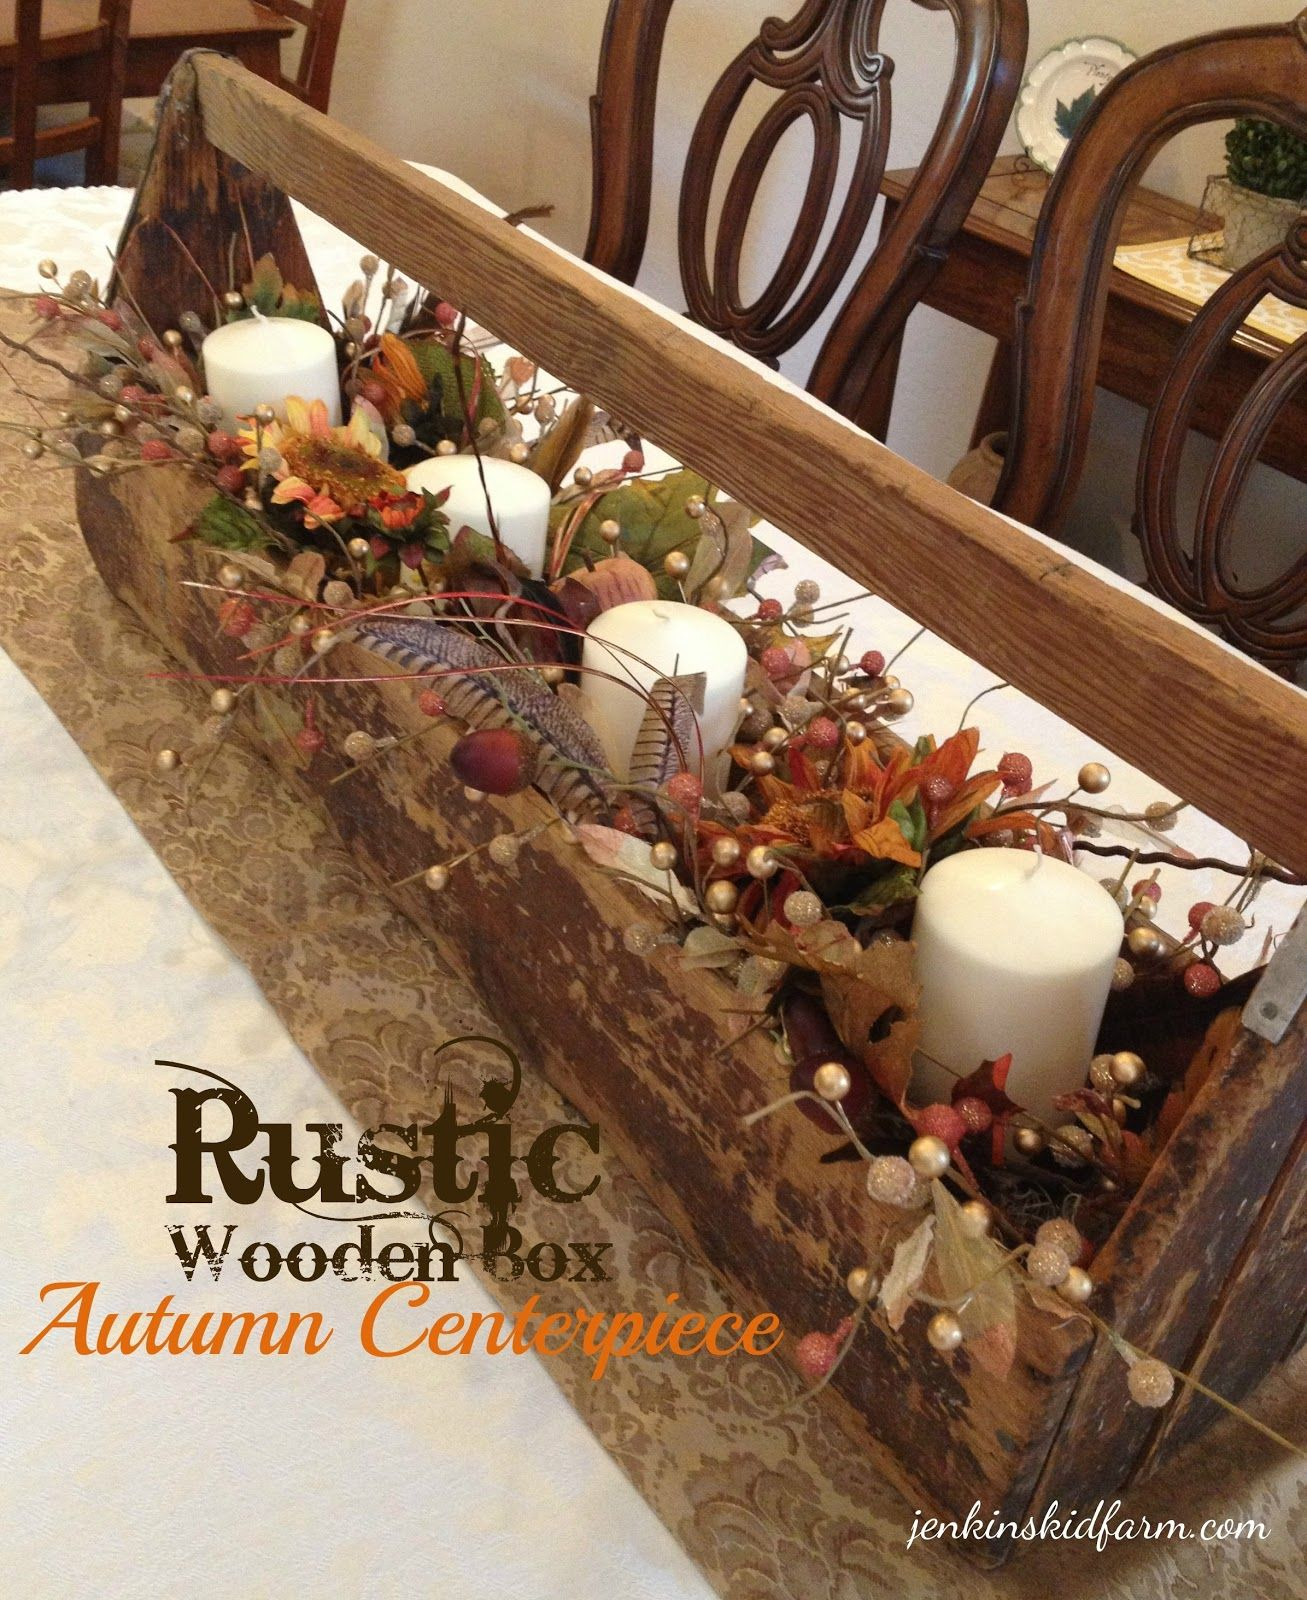 Wooden Box Christmas Centerpiece : Rustic wooden boxes for centerpieces jenkins kid farm